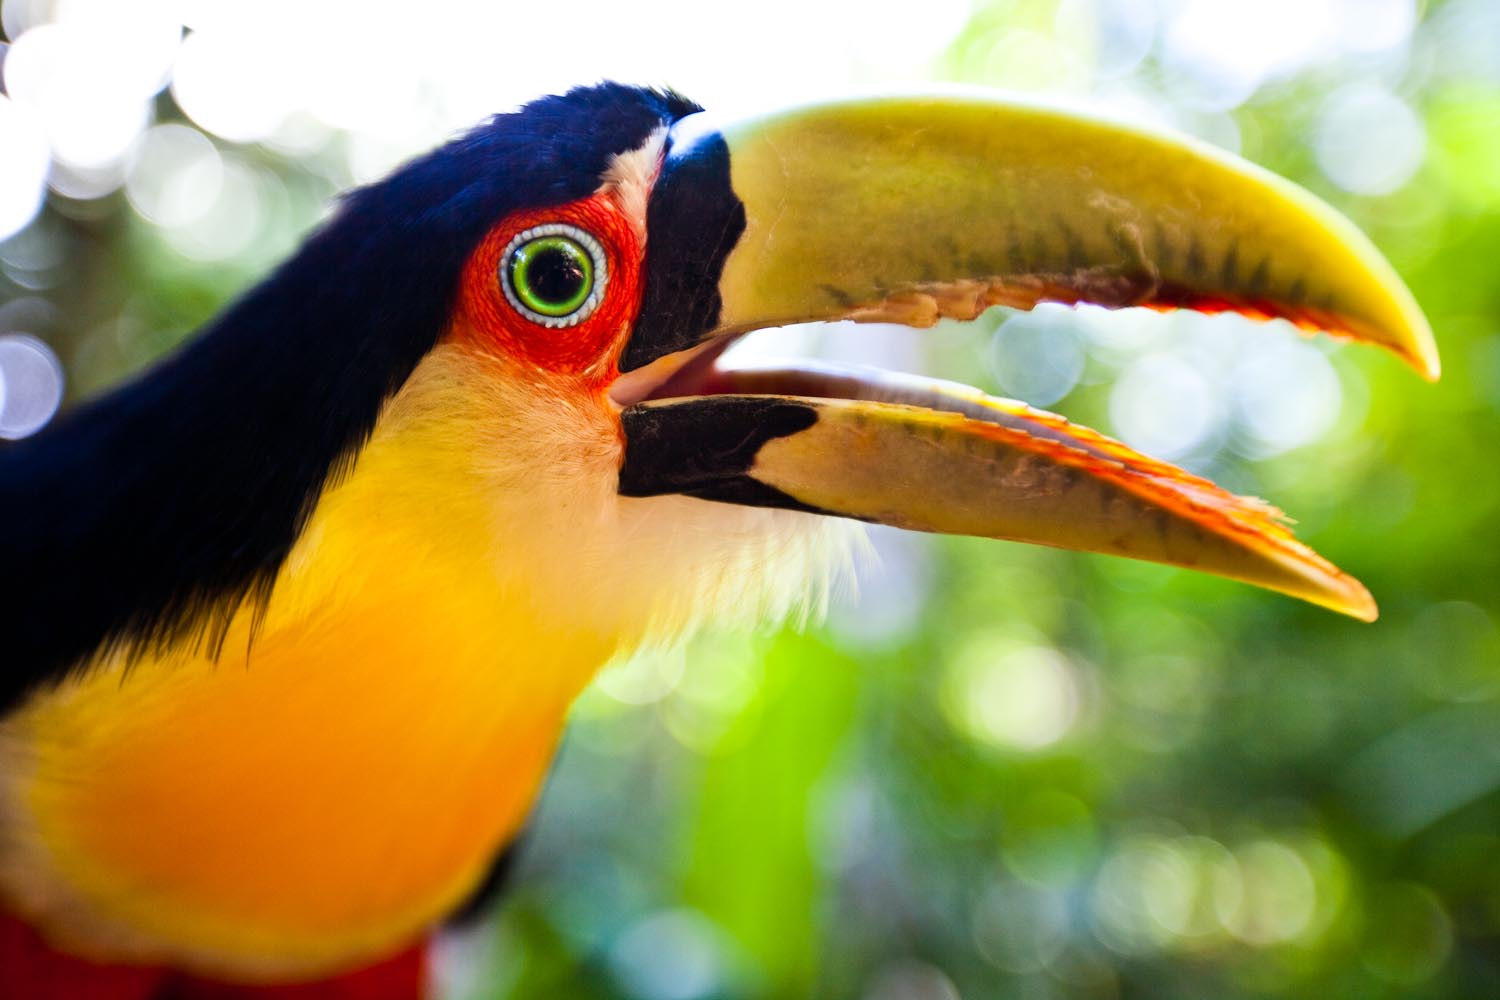 Red Breasted Toucan: Foz do Iguacu, Brazil